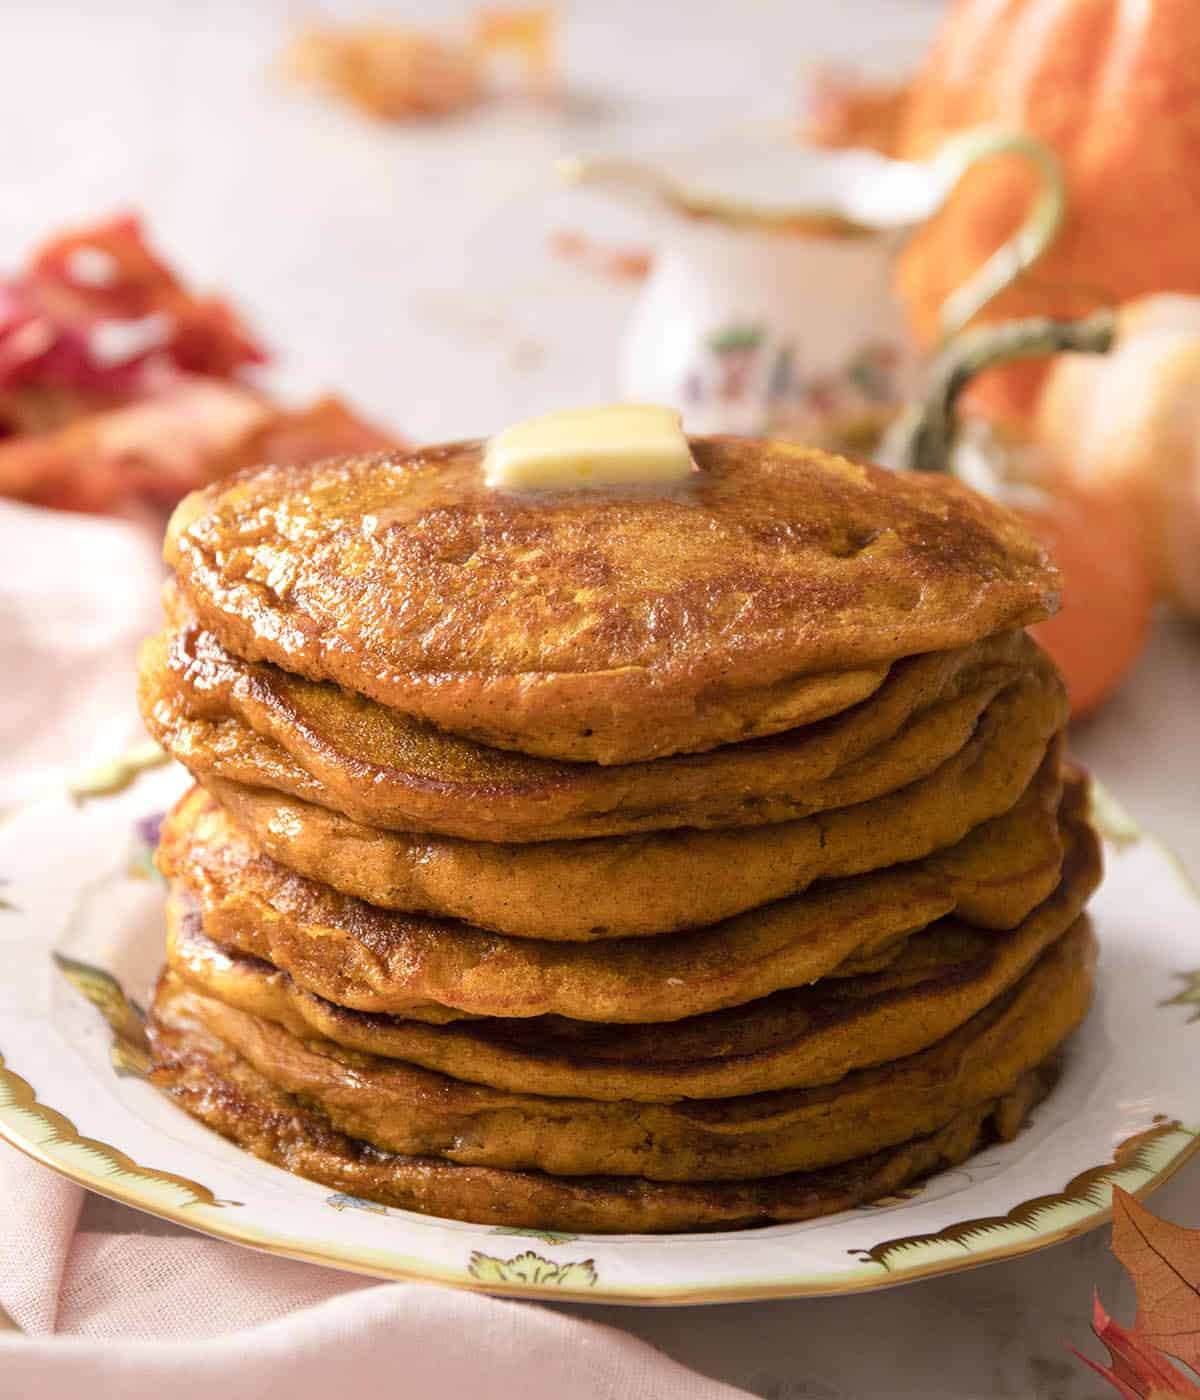 A stack of pumpkin pancakes on a blue and white plate.